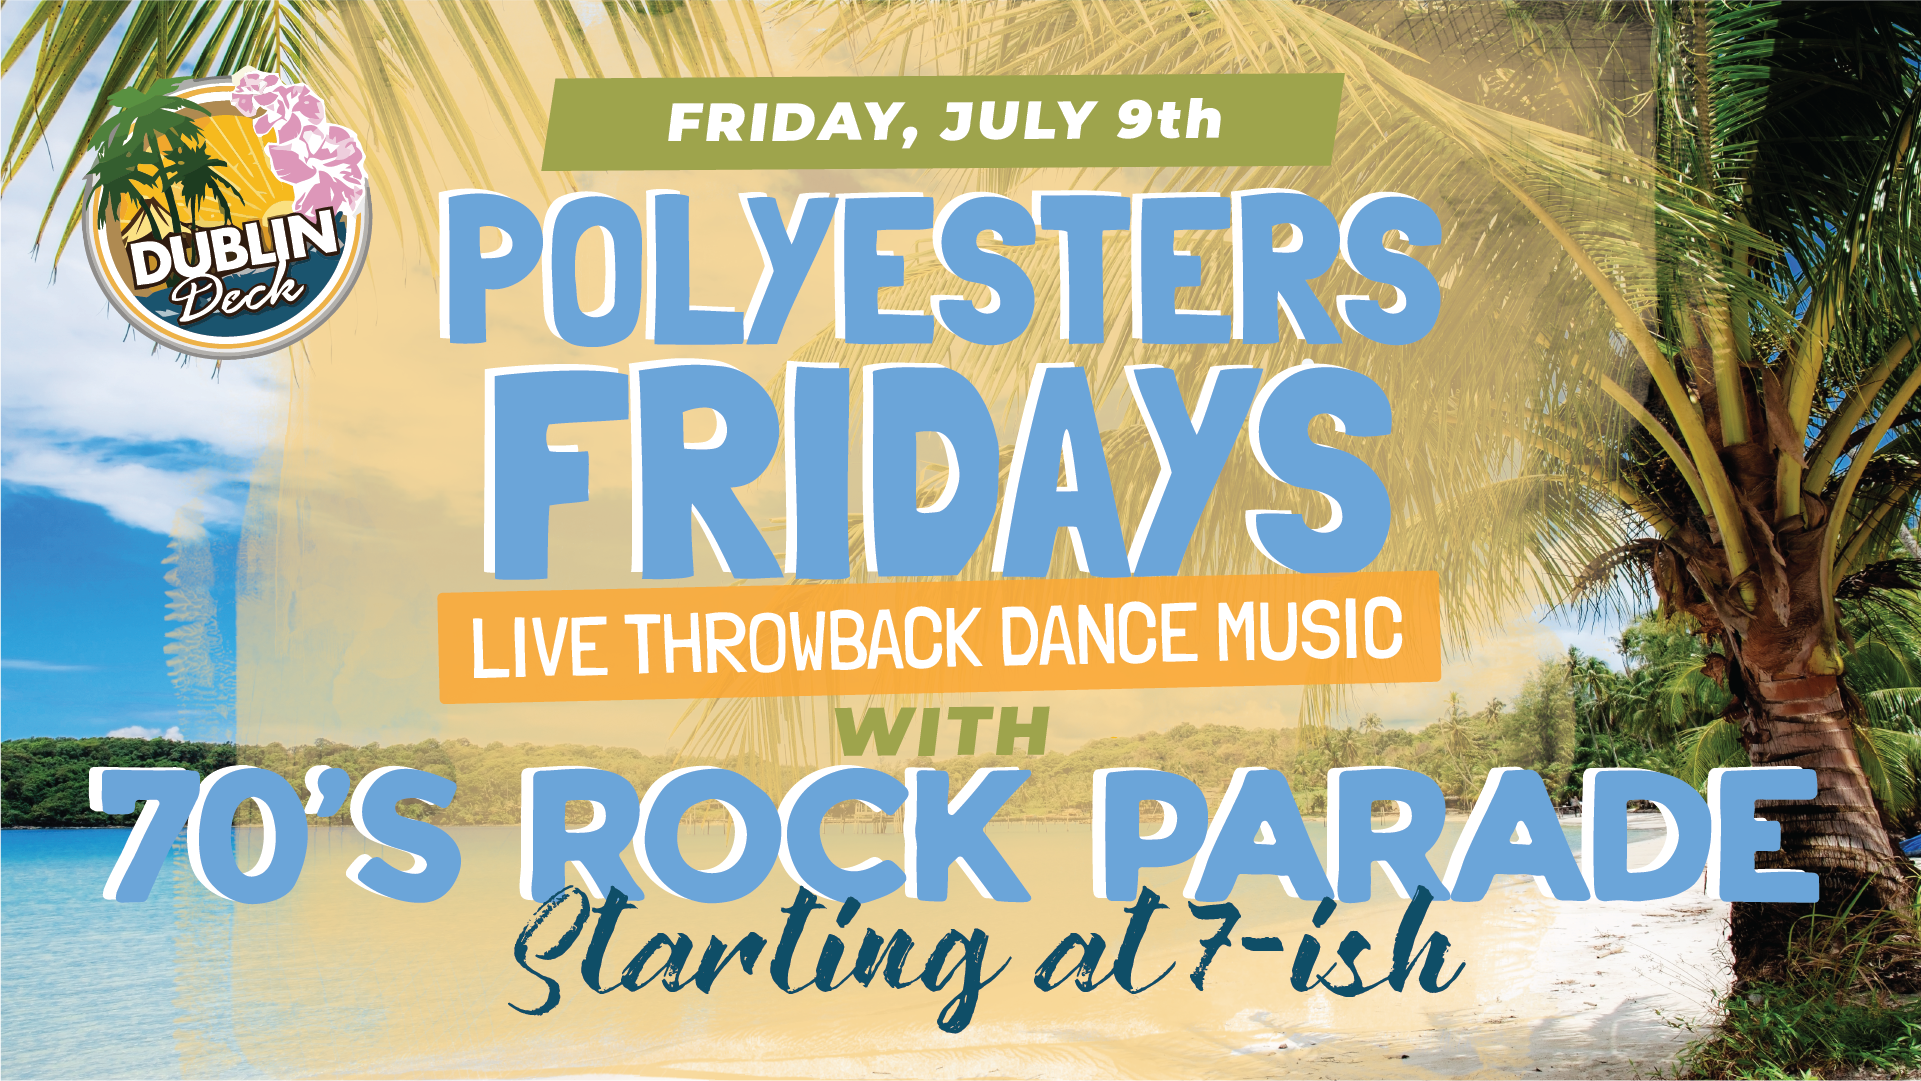 Friday July 9th with 70's Rock Parade 7:00 PM